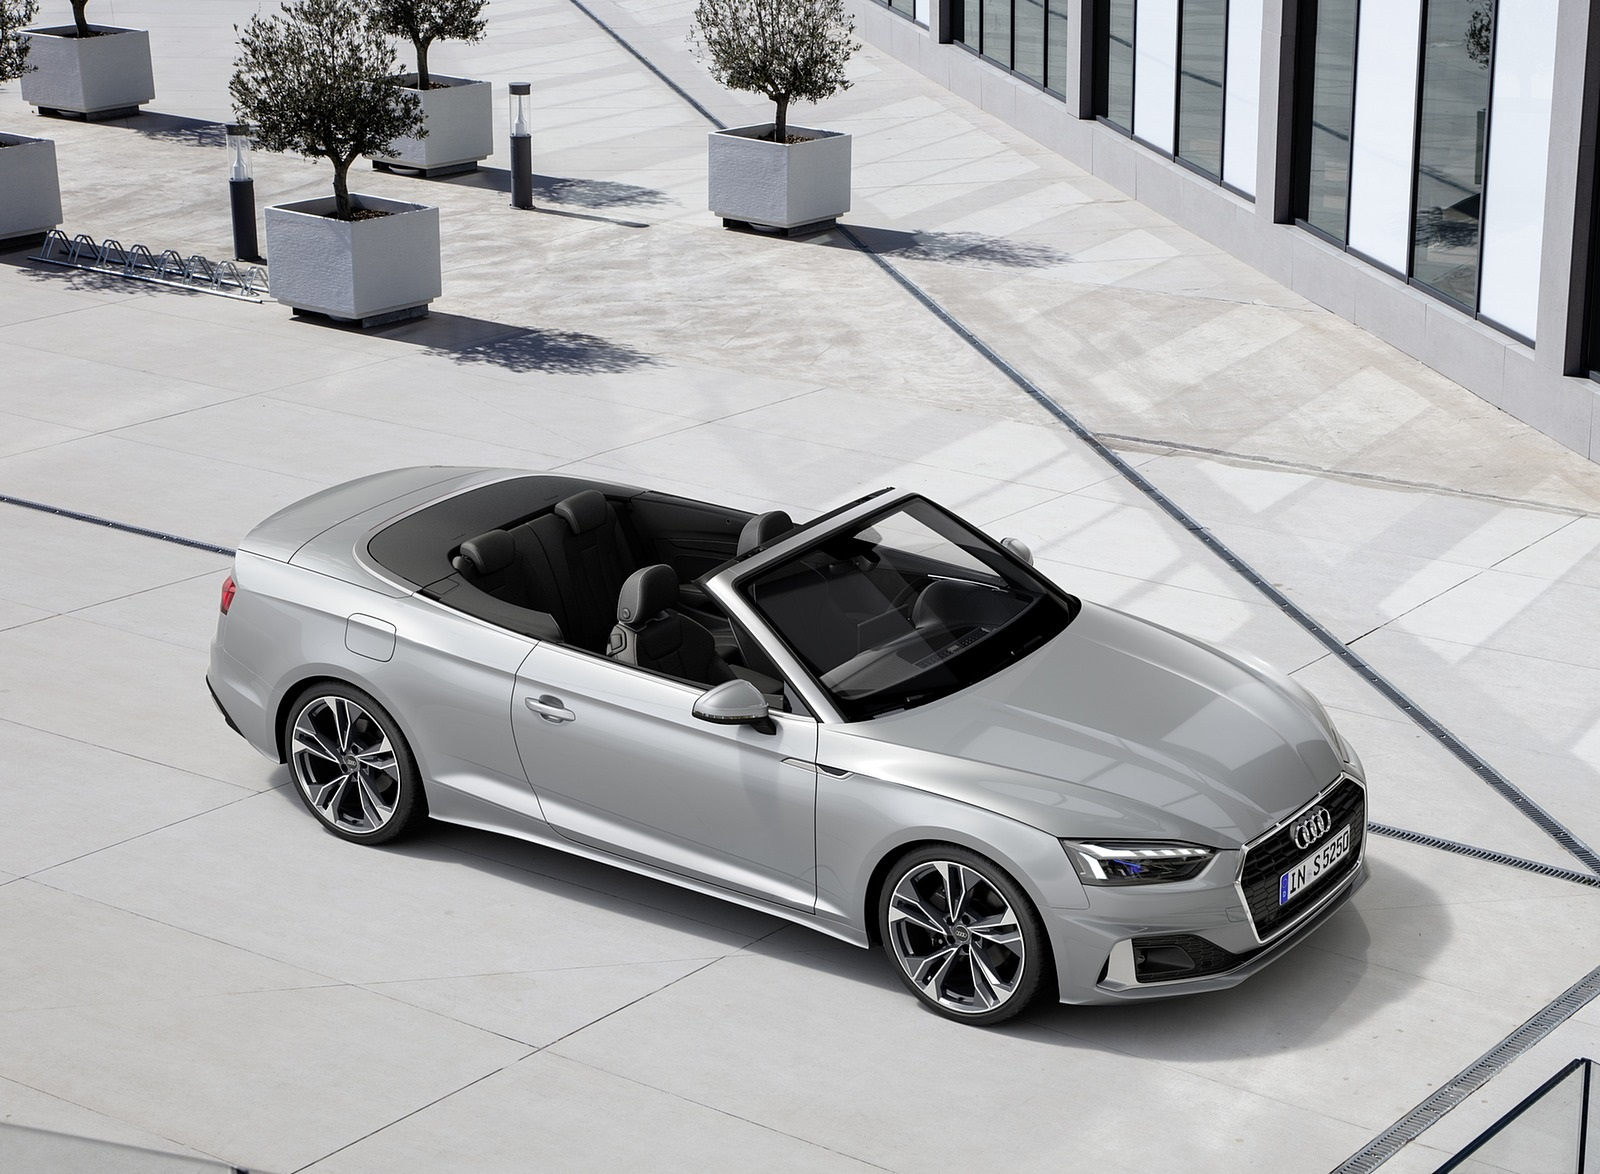 2020 Audi A5 Cabriolet (Color: Florett Silver) Front Three-Quarter Wallpapers (9)